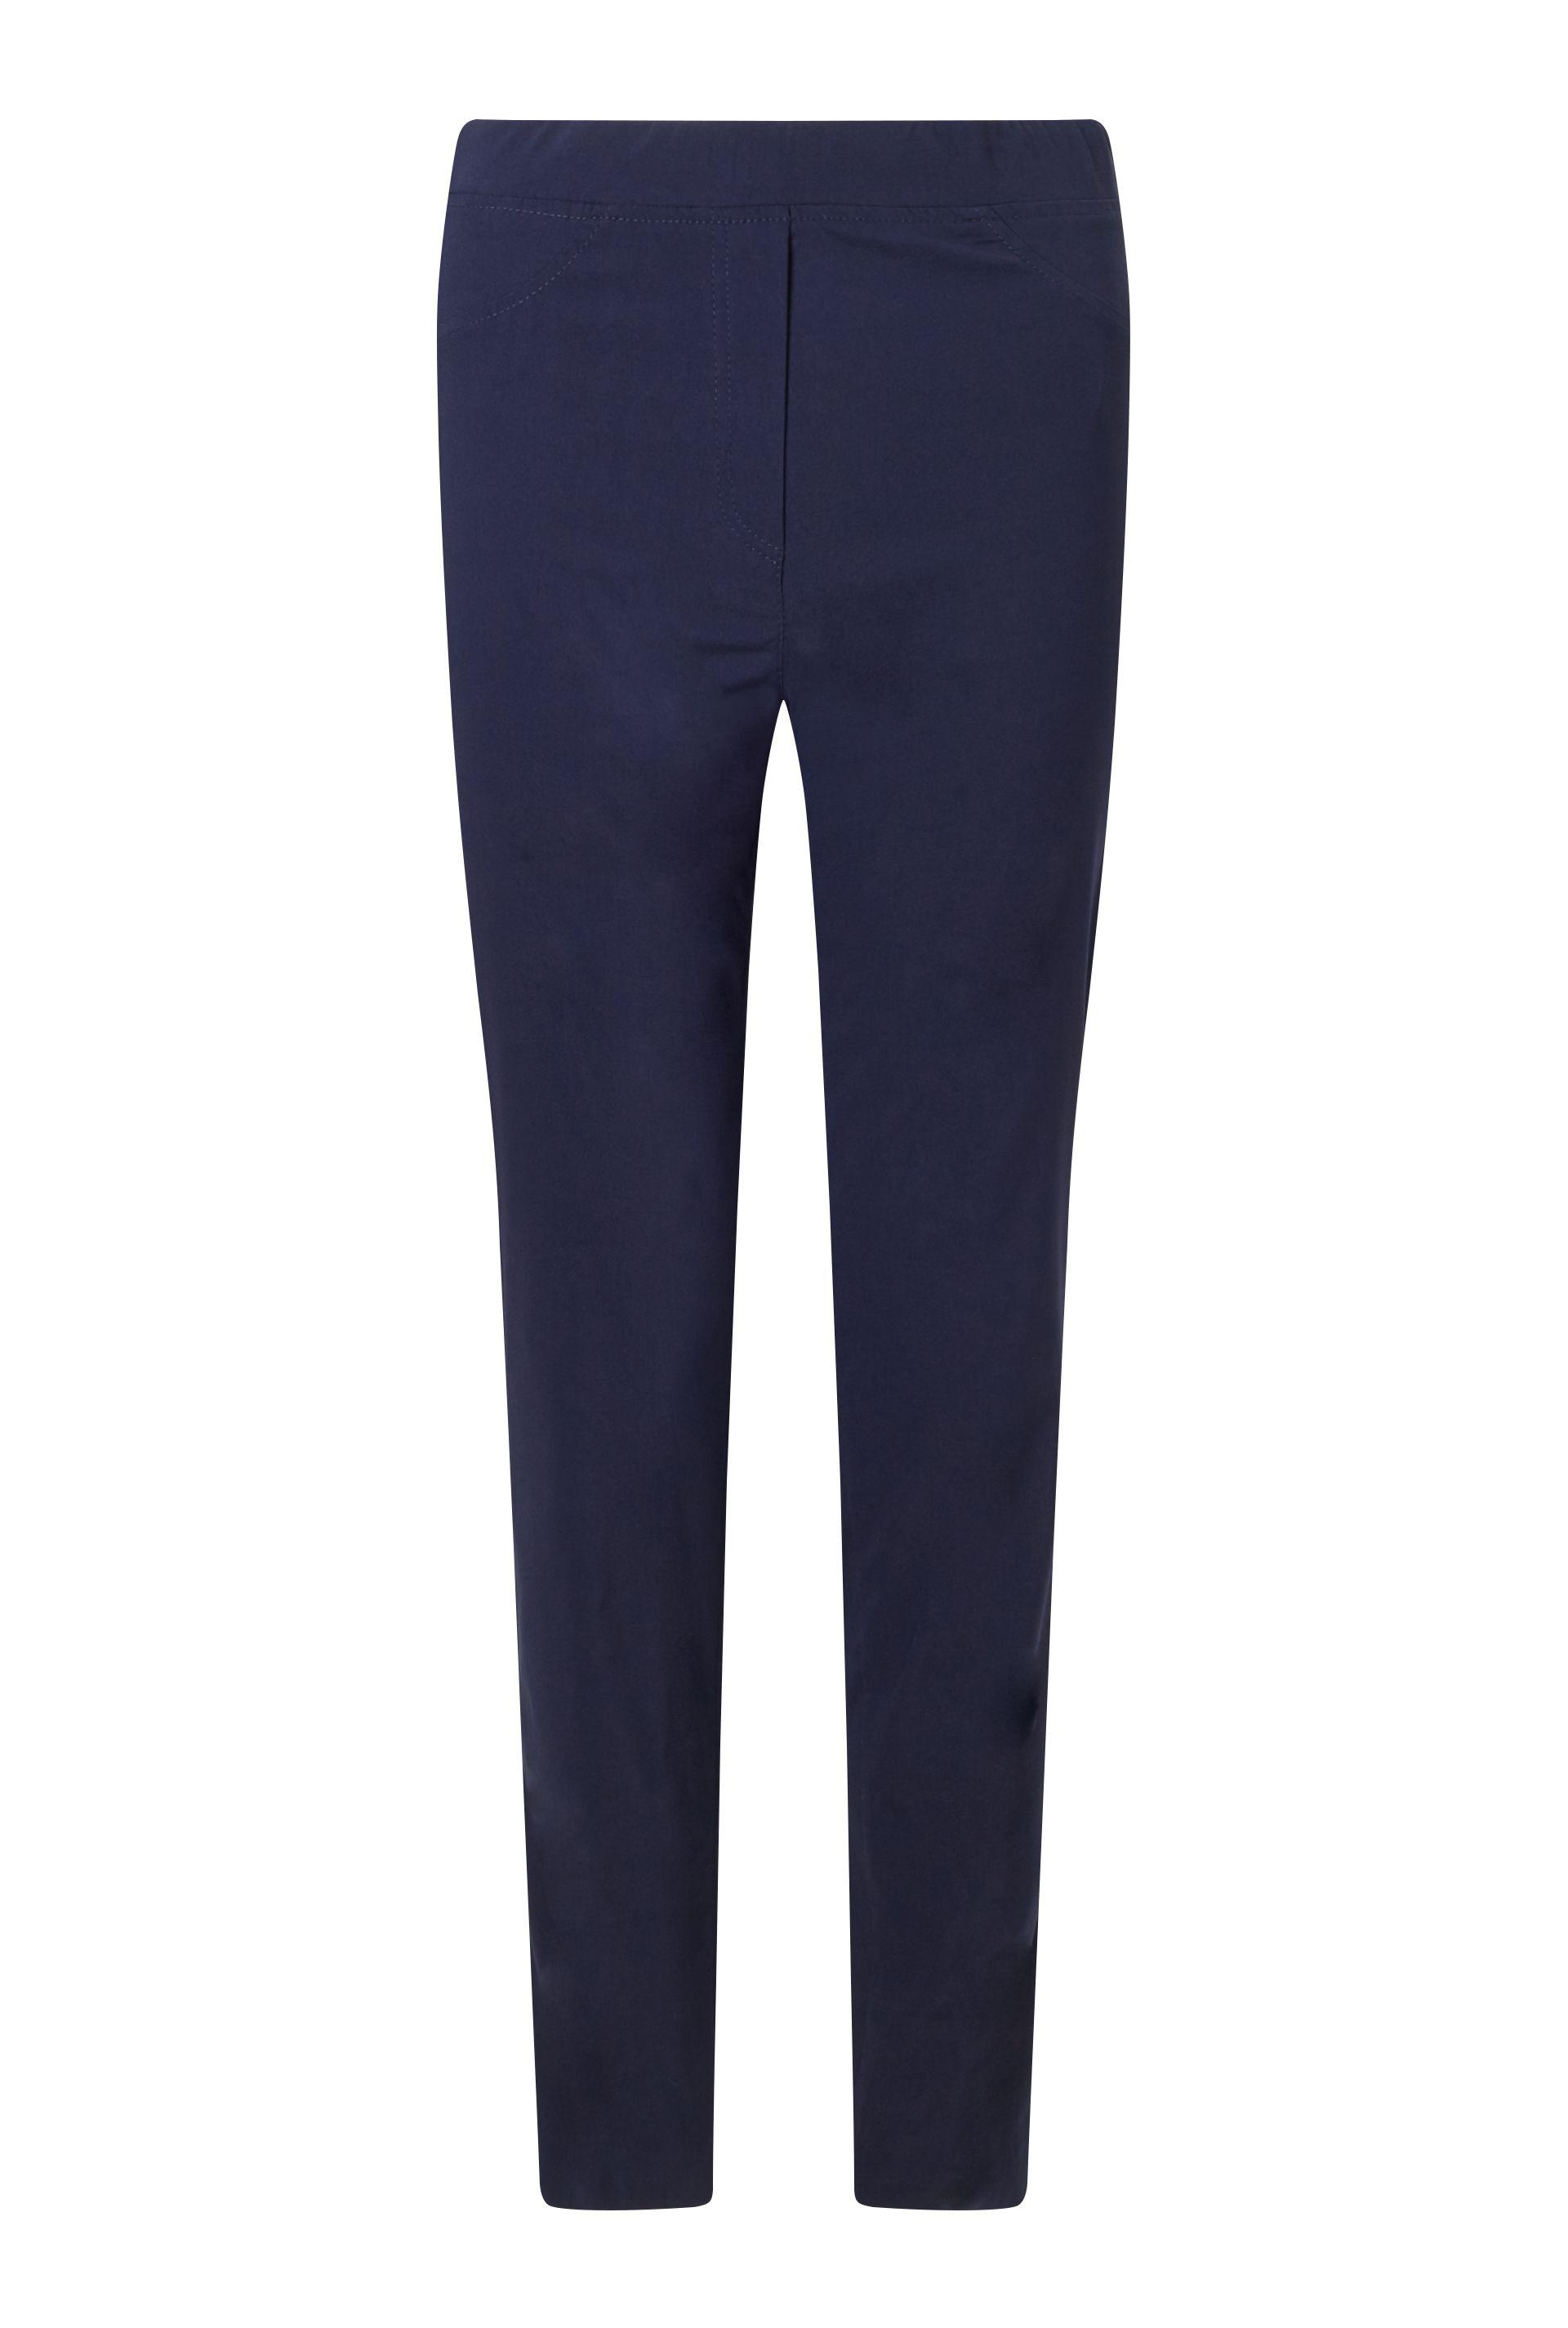 James Lakeland Long Length Bengalina Trouser, Blue